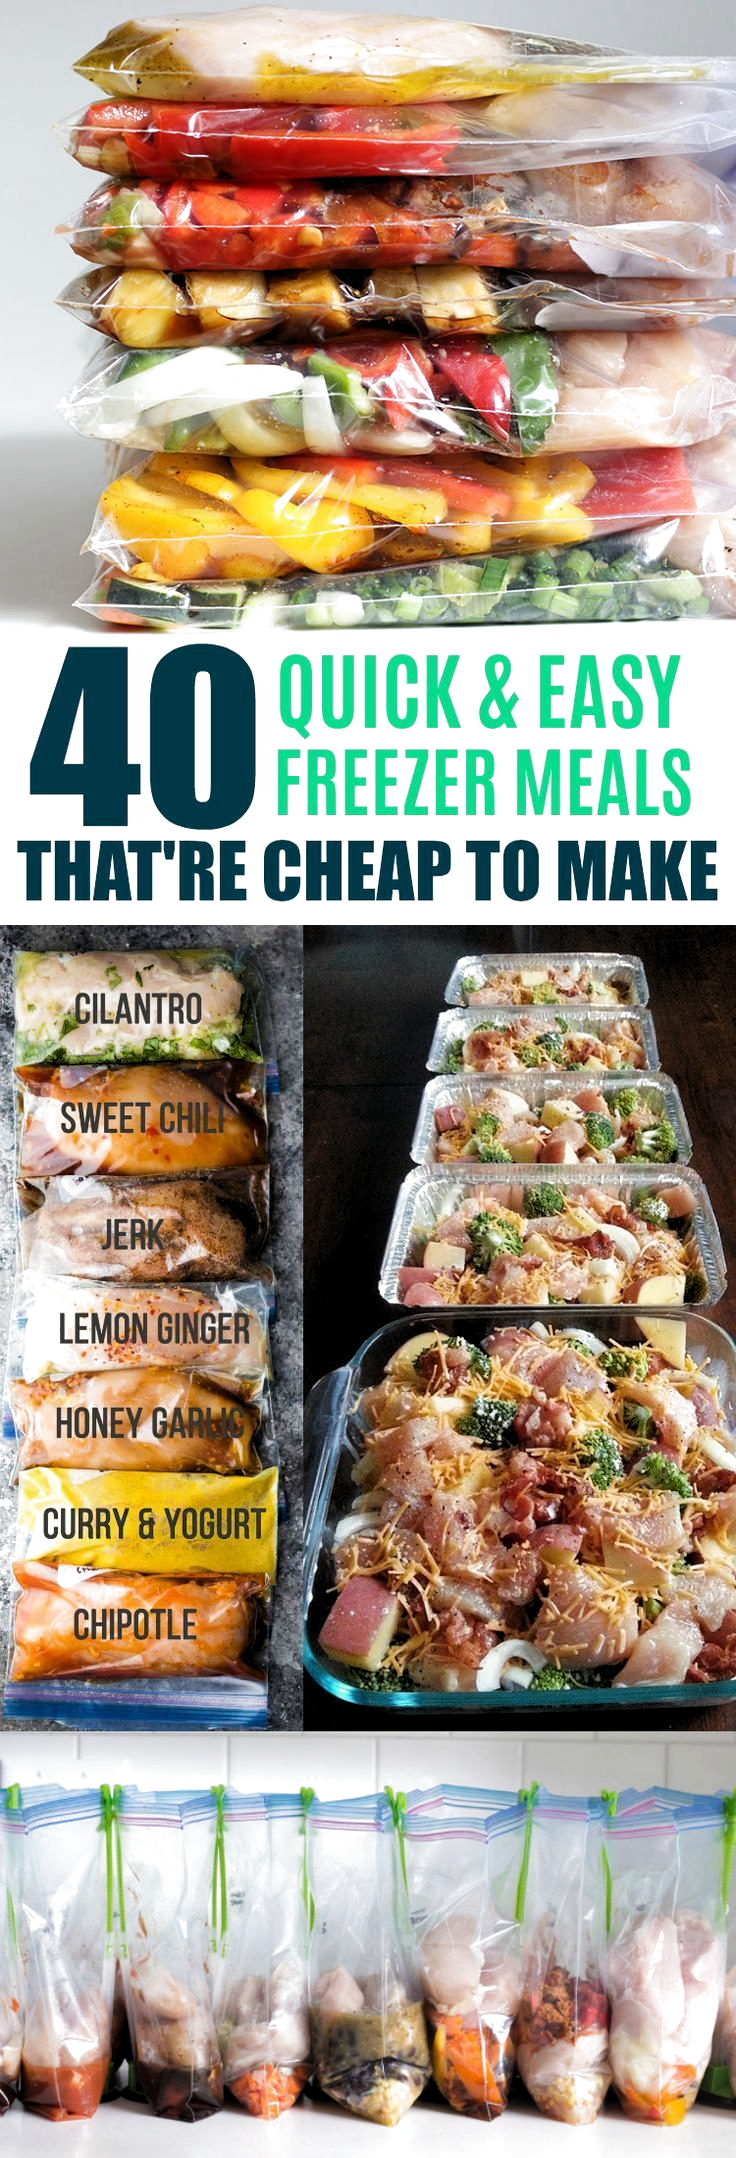 Meal Prep Recipes, Freezer Meals, Crock Pot, Instant Pot - 40 Quick Freezer Meal Prep Ideas that are Cheap to Make #crockpotmealprep